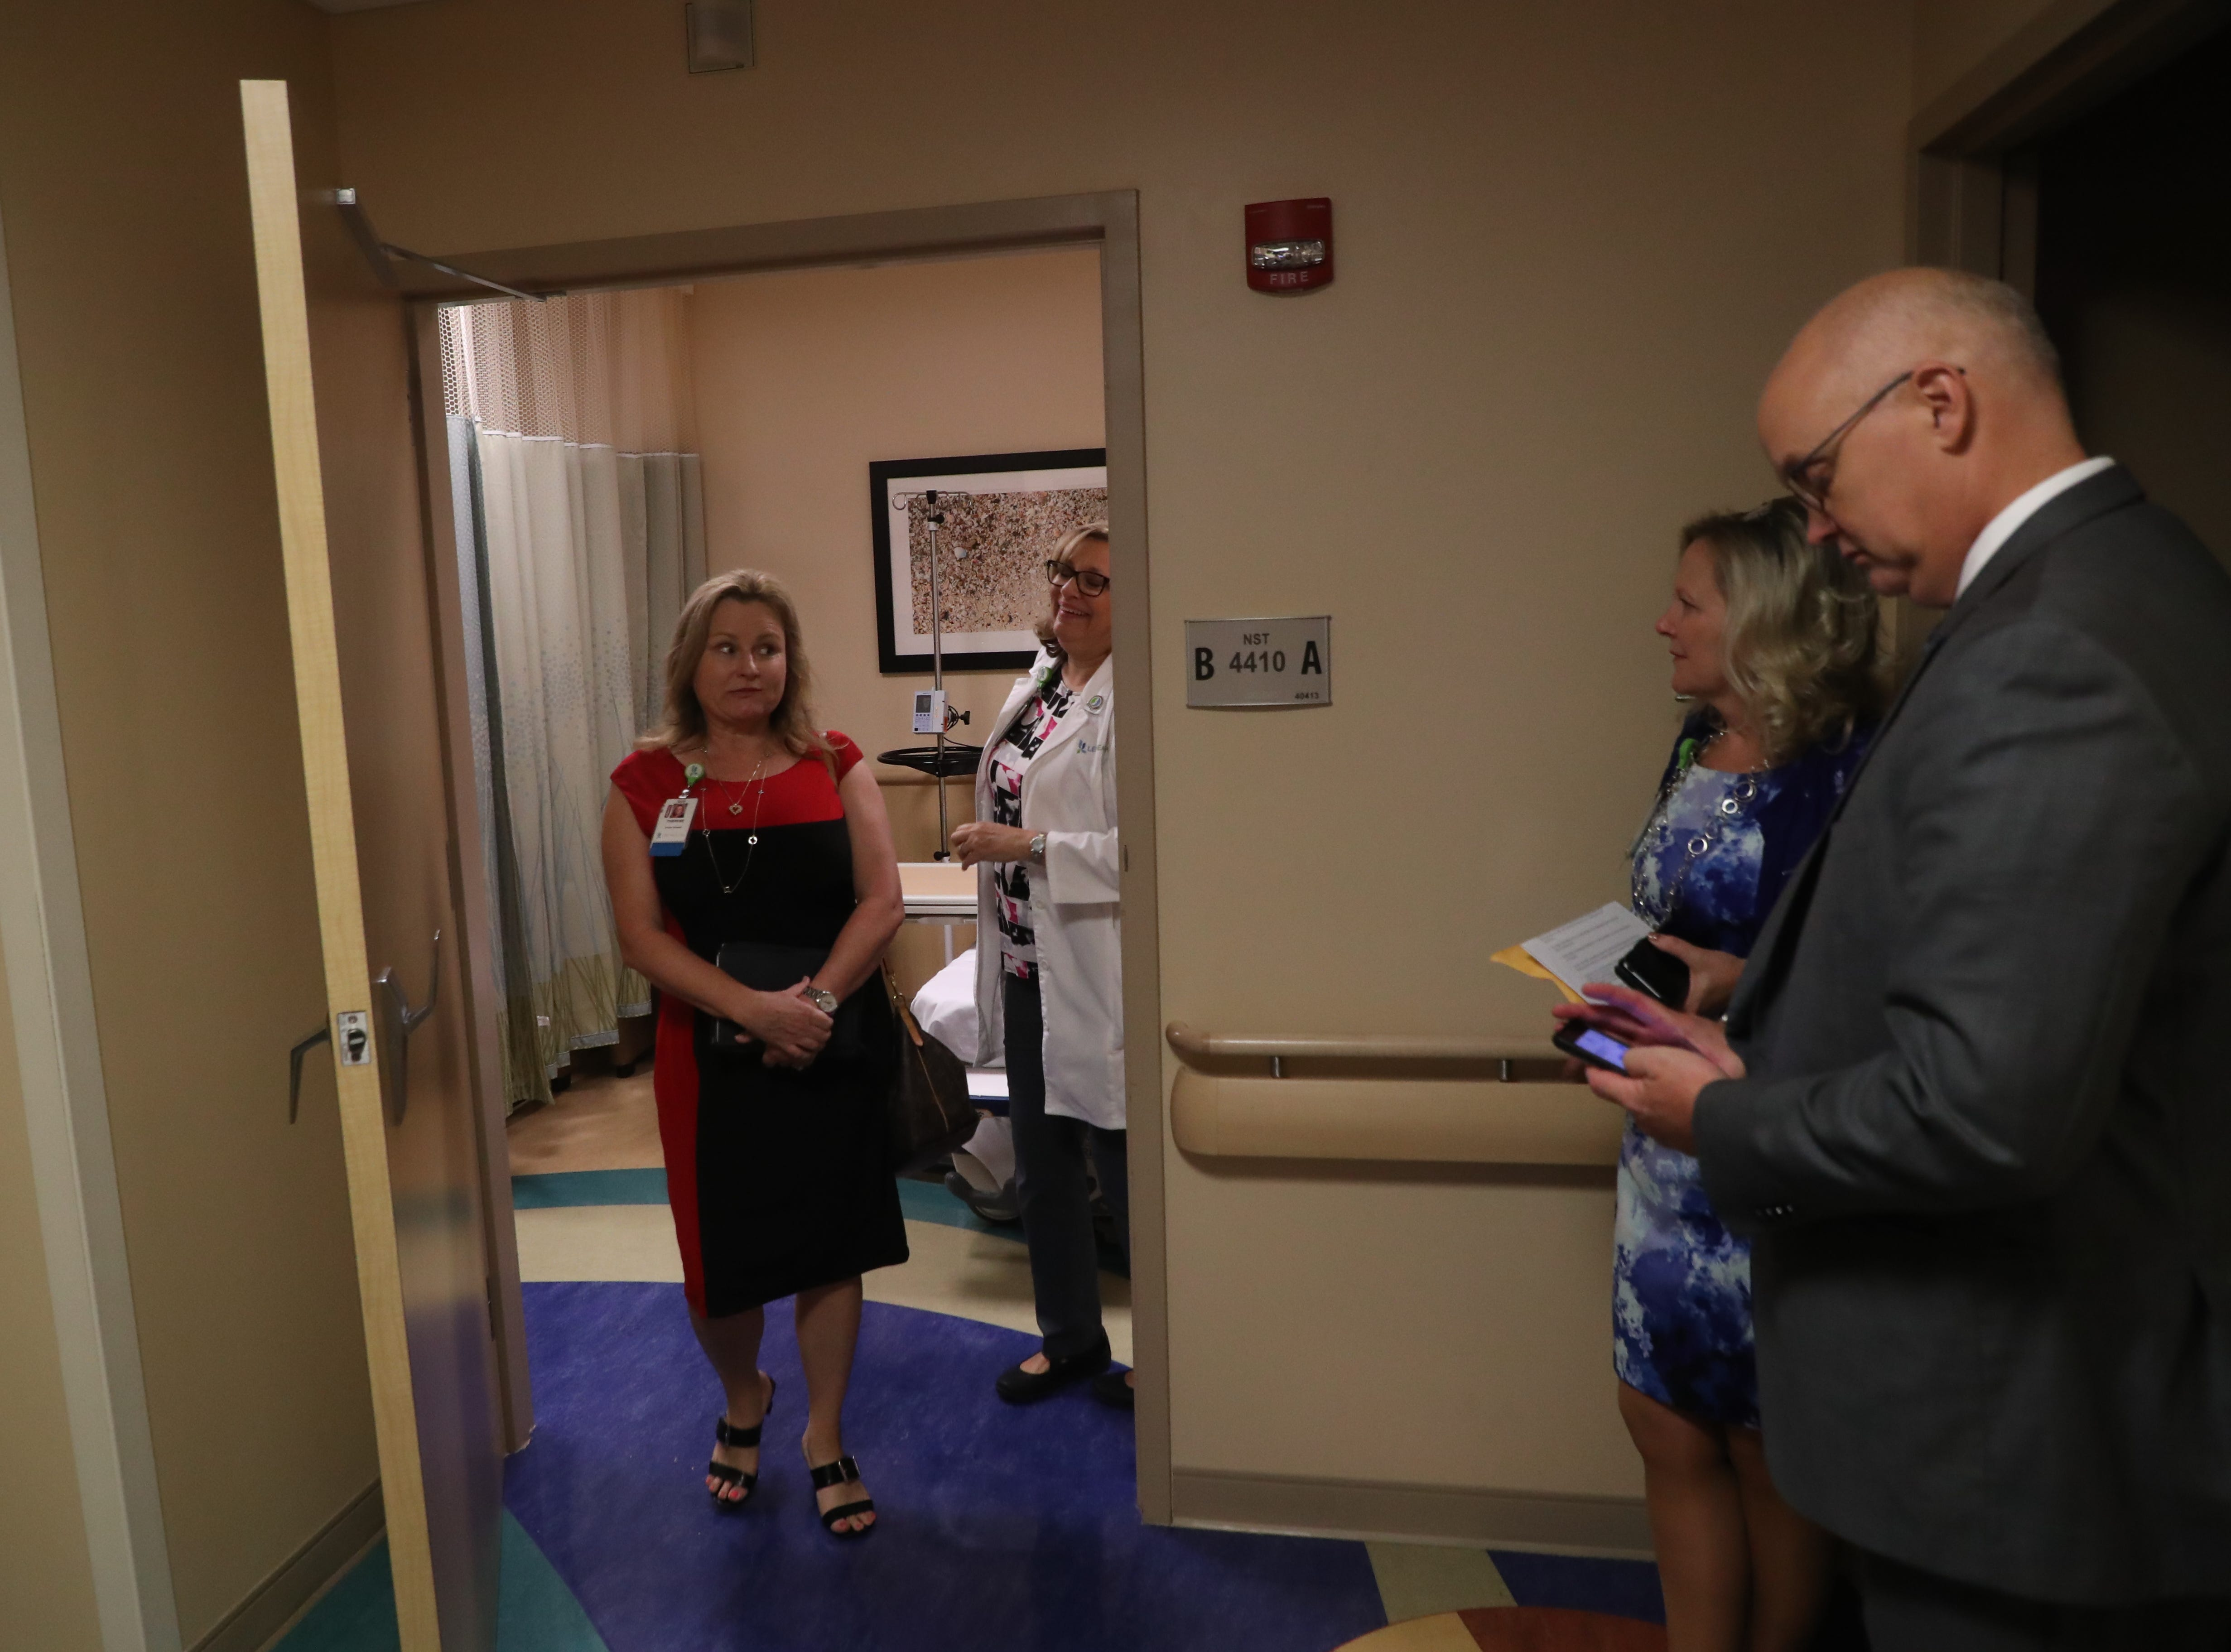 Lee Health is expanding its obstetrical services  and renovating OB rooms at HealthPark Medical Center. The health system will now feature 107 OB beds, and all of the newly renovated rooms at HPMC will be fully private with family sleep capabilities. This transition will create 10 additional beds across the health system and as of March 1, 2019, the obstetrical service line currently offered at Gulf Coast Medical Center will be transferred to HealthPark.